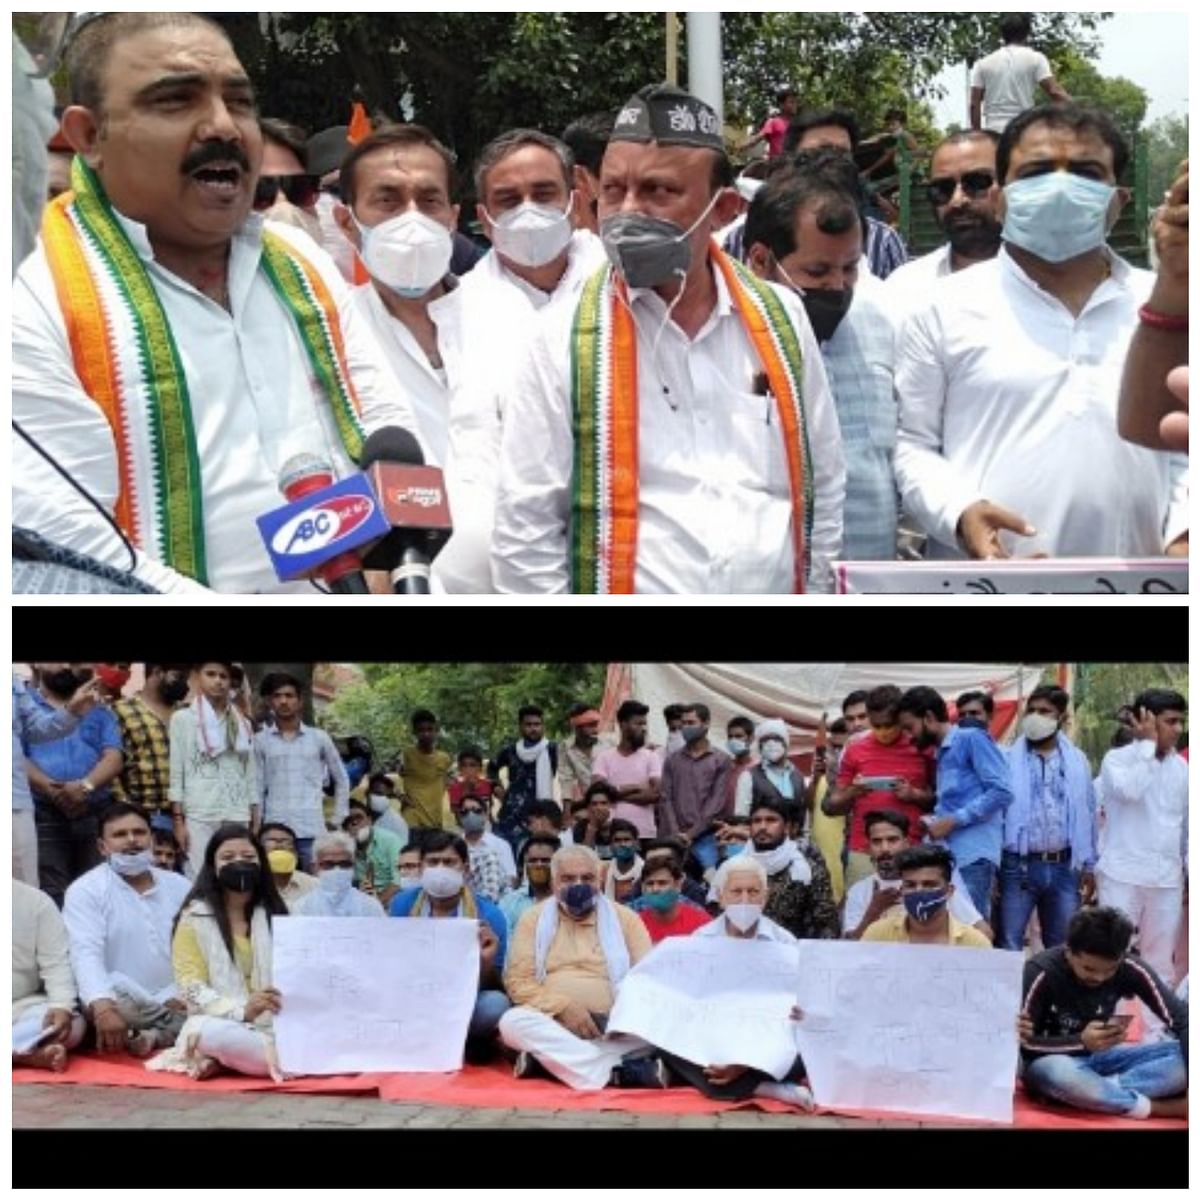 congress-demonstrated-at-petrol-pumps-in-protest-against-uncontrollable-petroleum-products-in-the-country